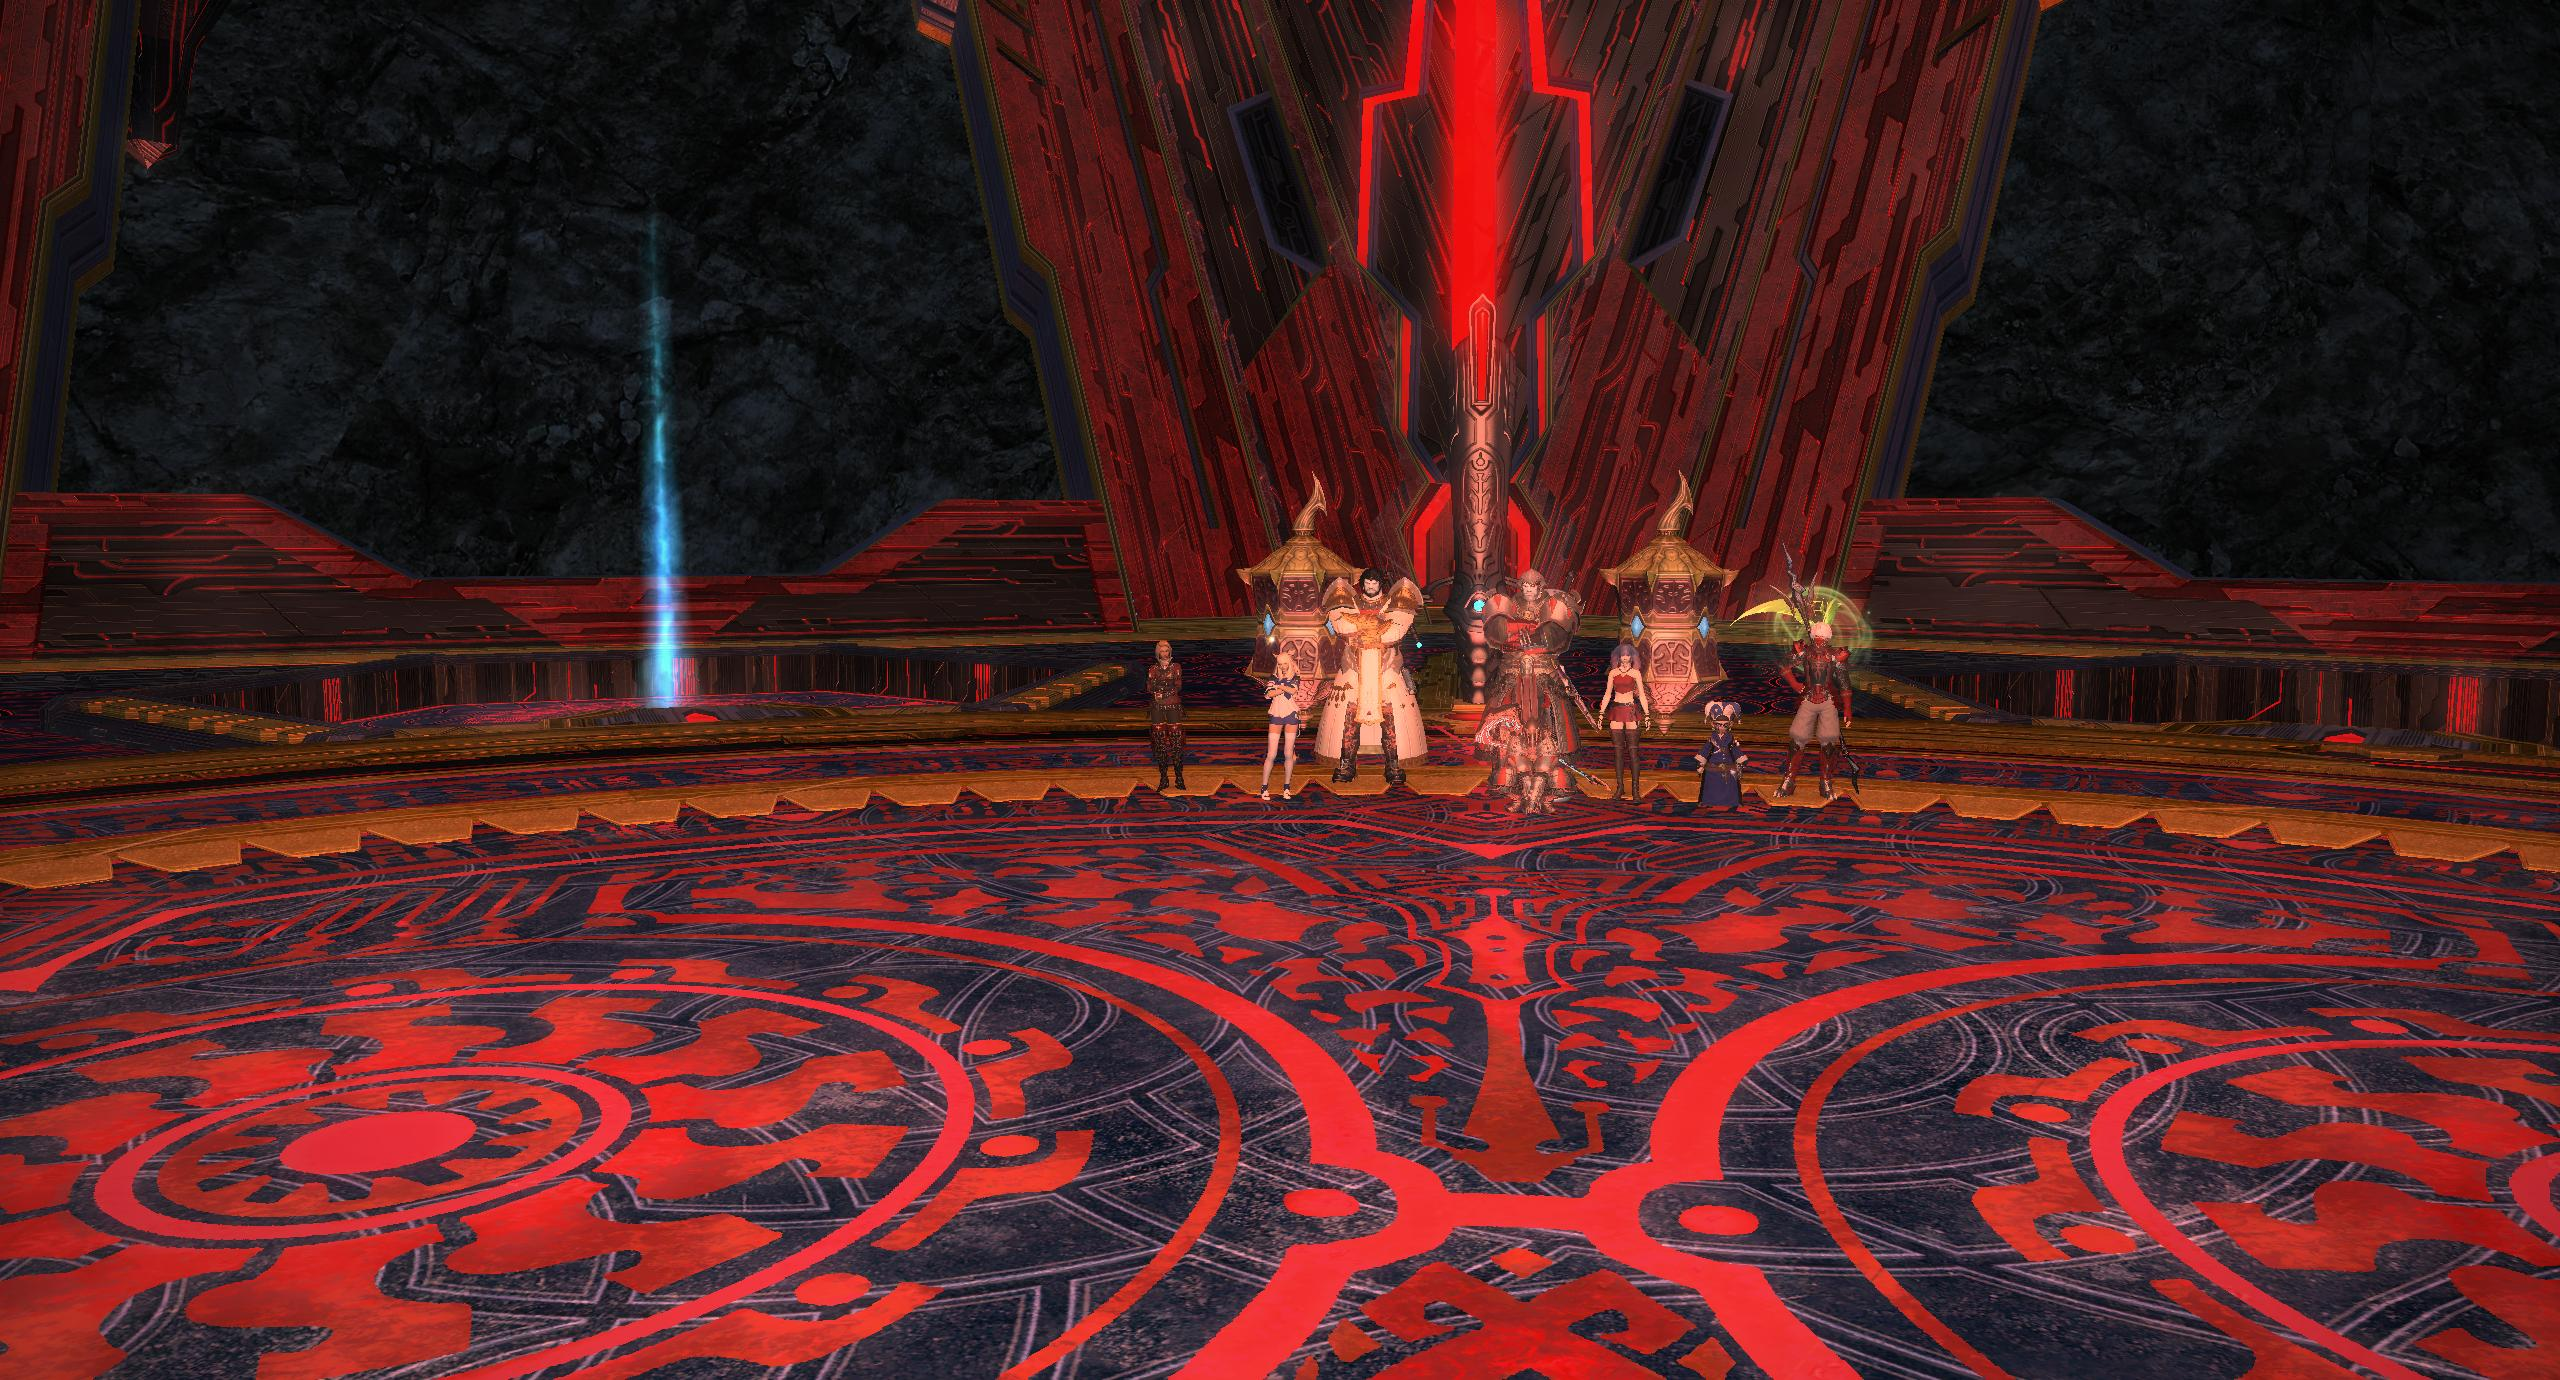 crizto ffxiv have because sprint move spread they like fuck alkimi from sense said melees anyway common thats been always literally loose blunt facetanking golem might fire going firethunder thunder stay front laziness until stacking just want forces nova dont long directionals made used during centre purely rotation divebomb being boss bahamut